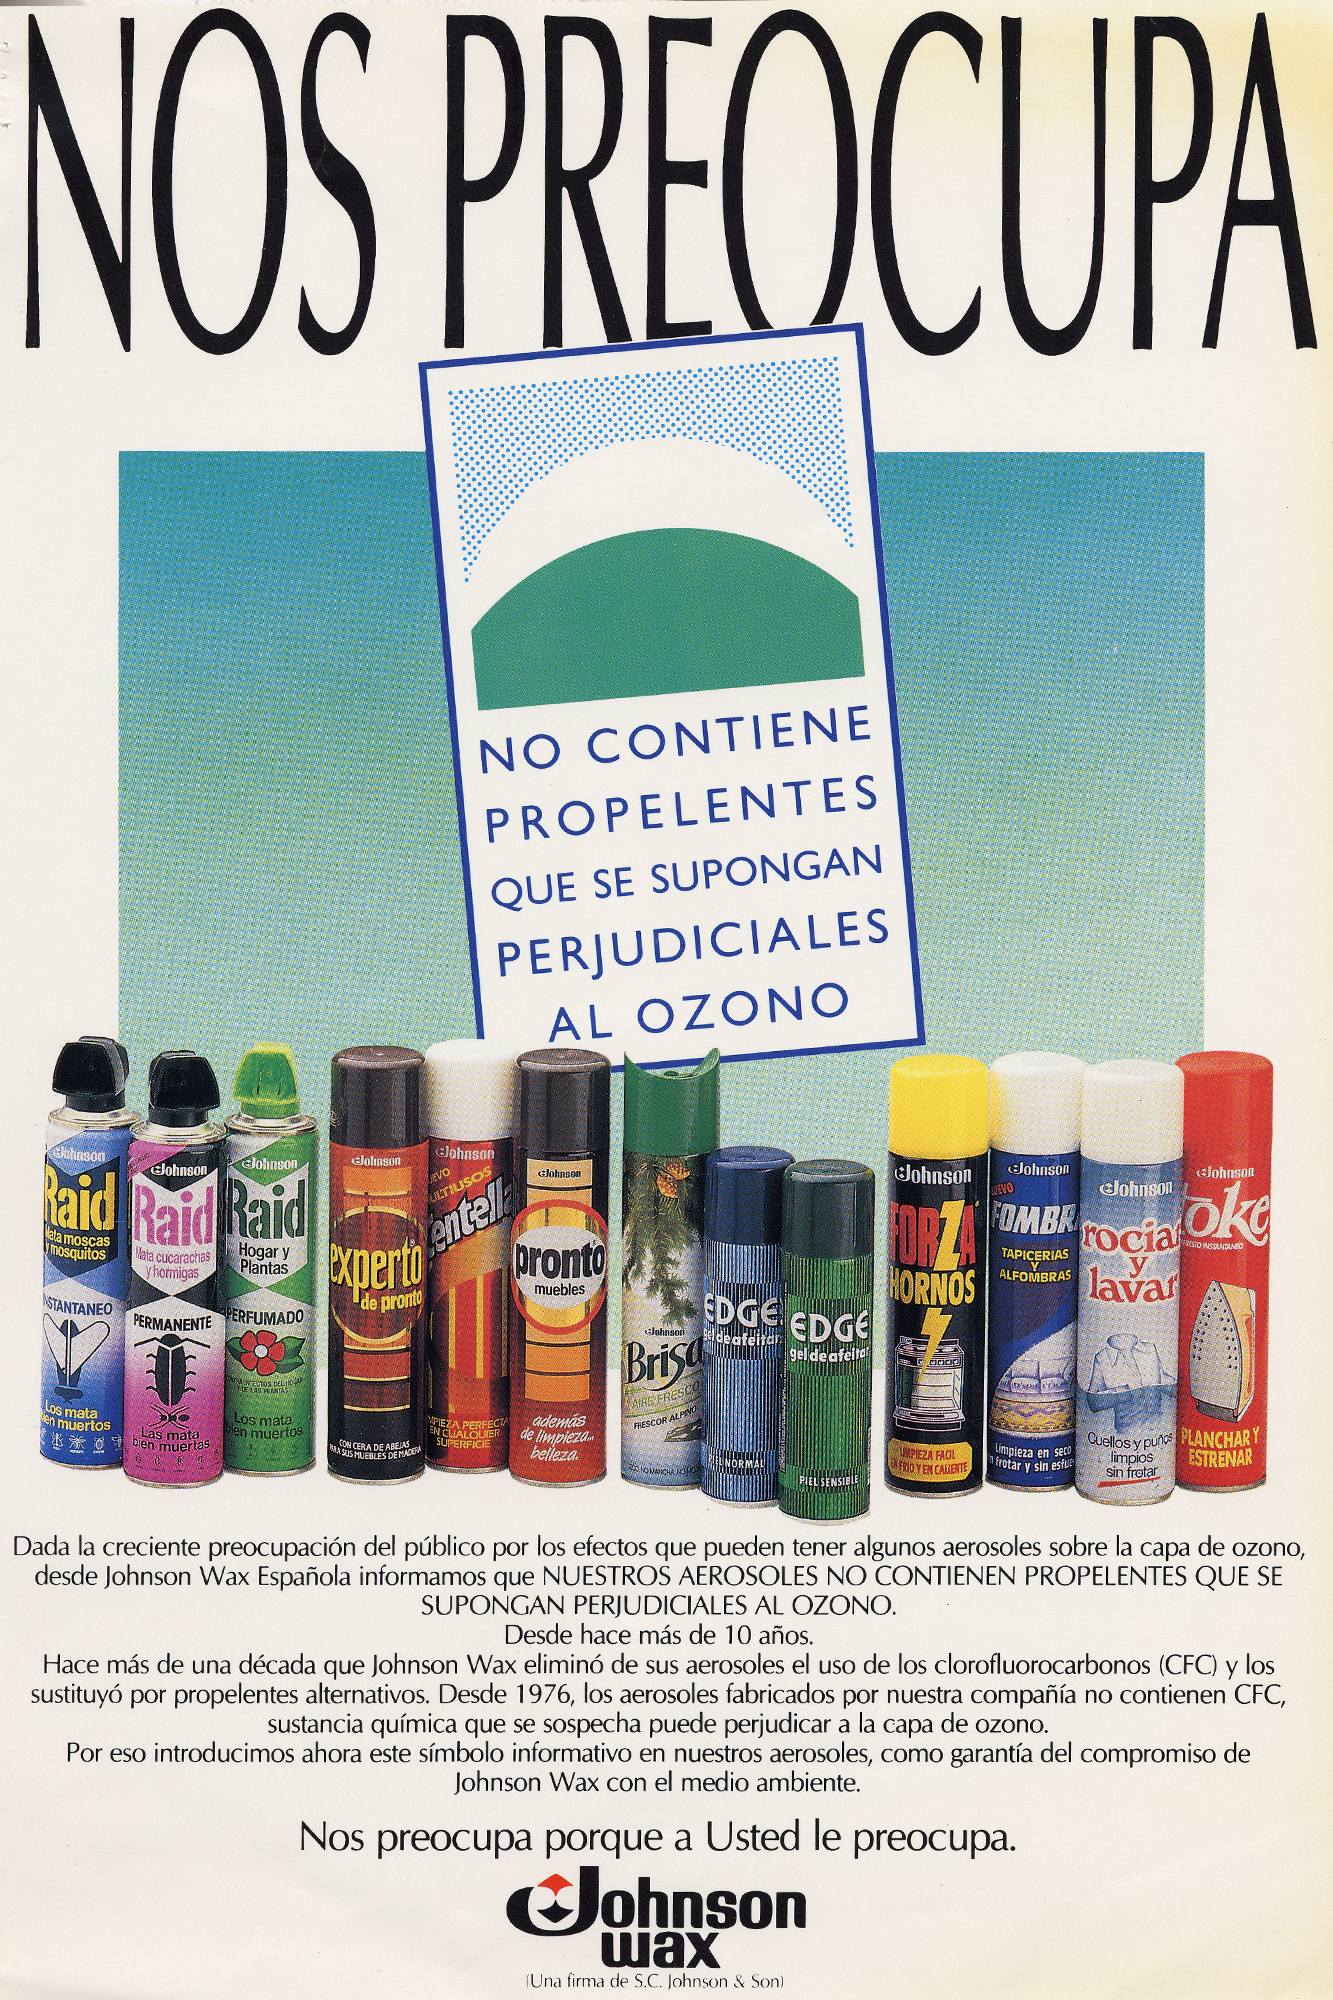 Johnson Wax ad explaining CFCs were removed from all products to be environmentally responsible.